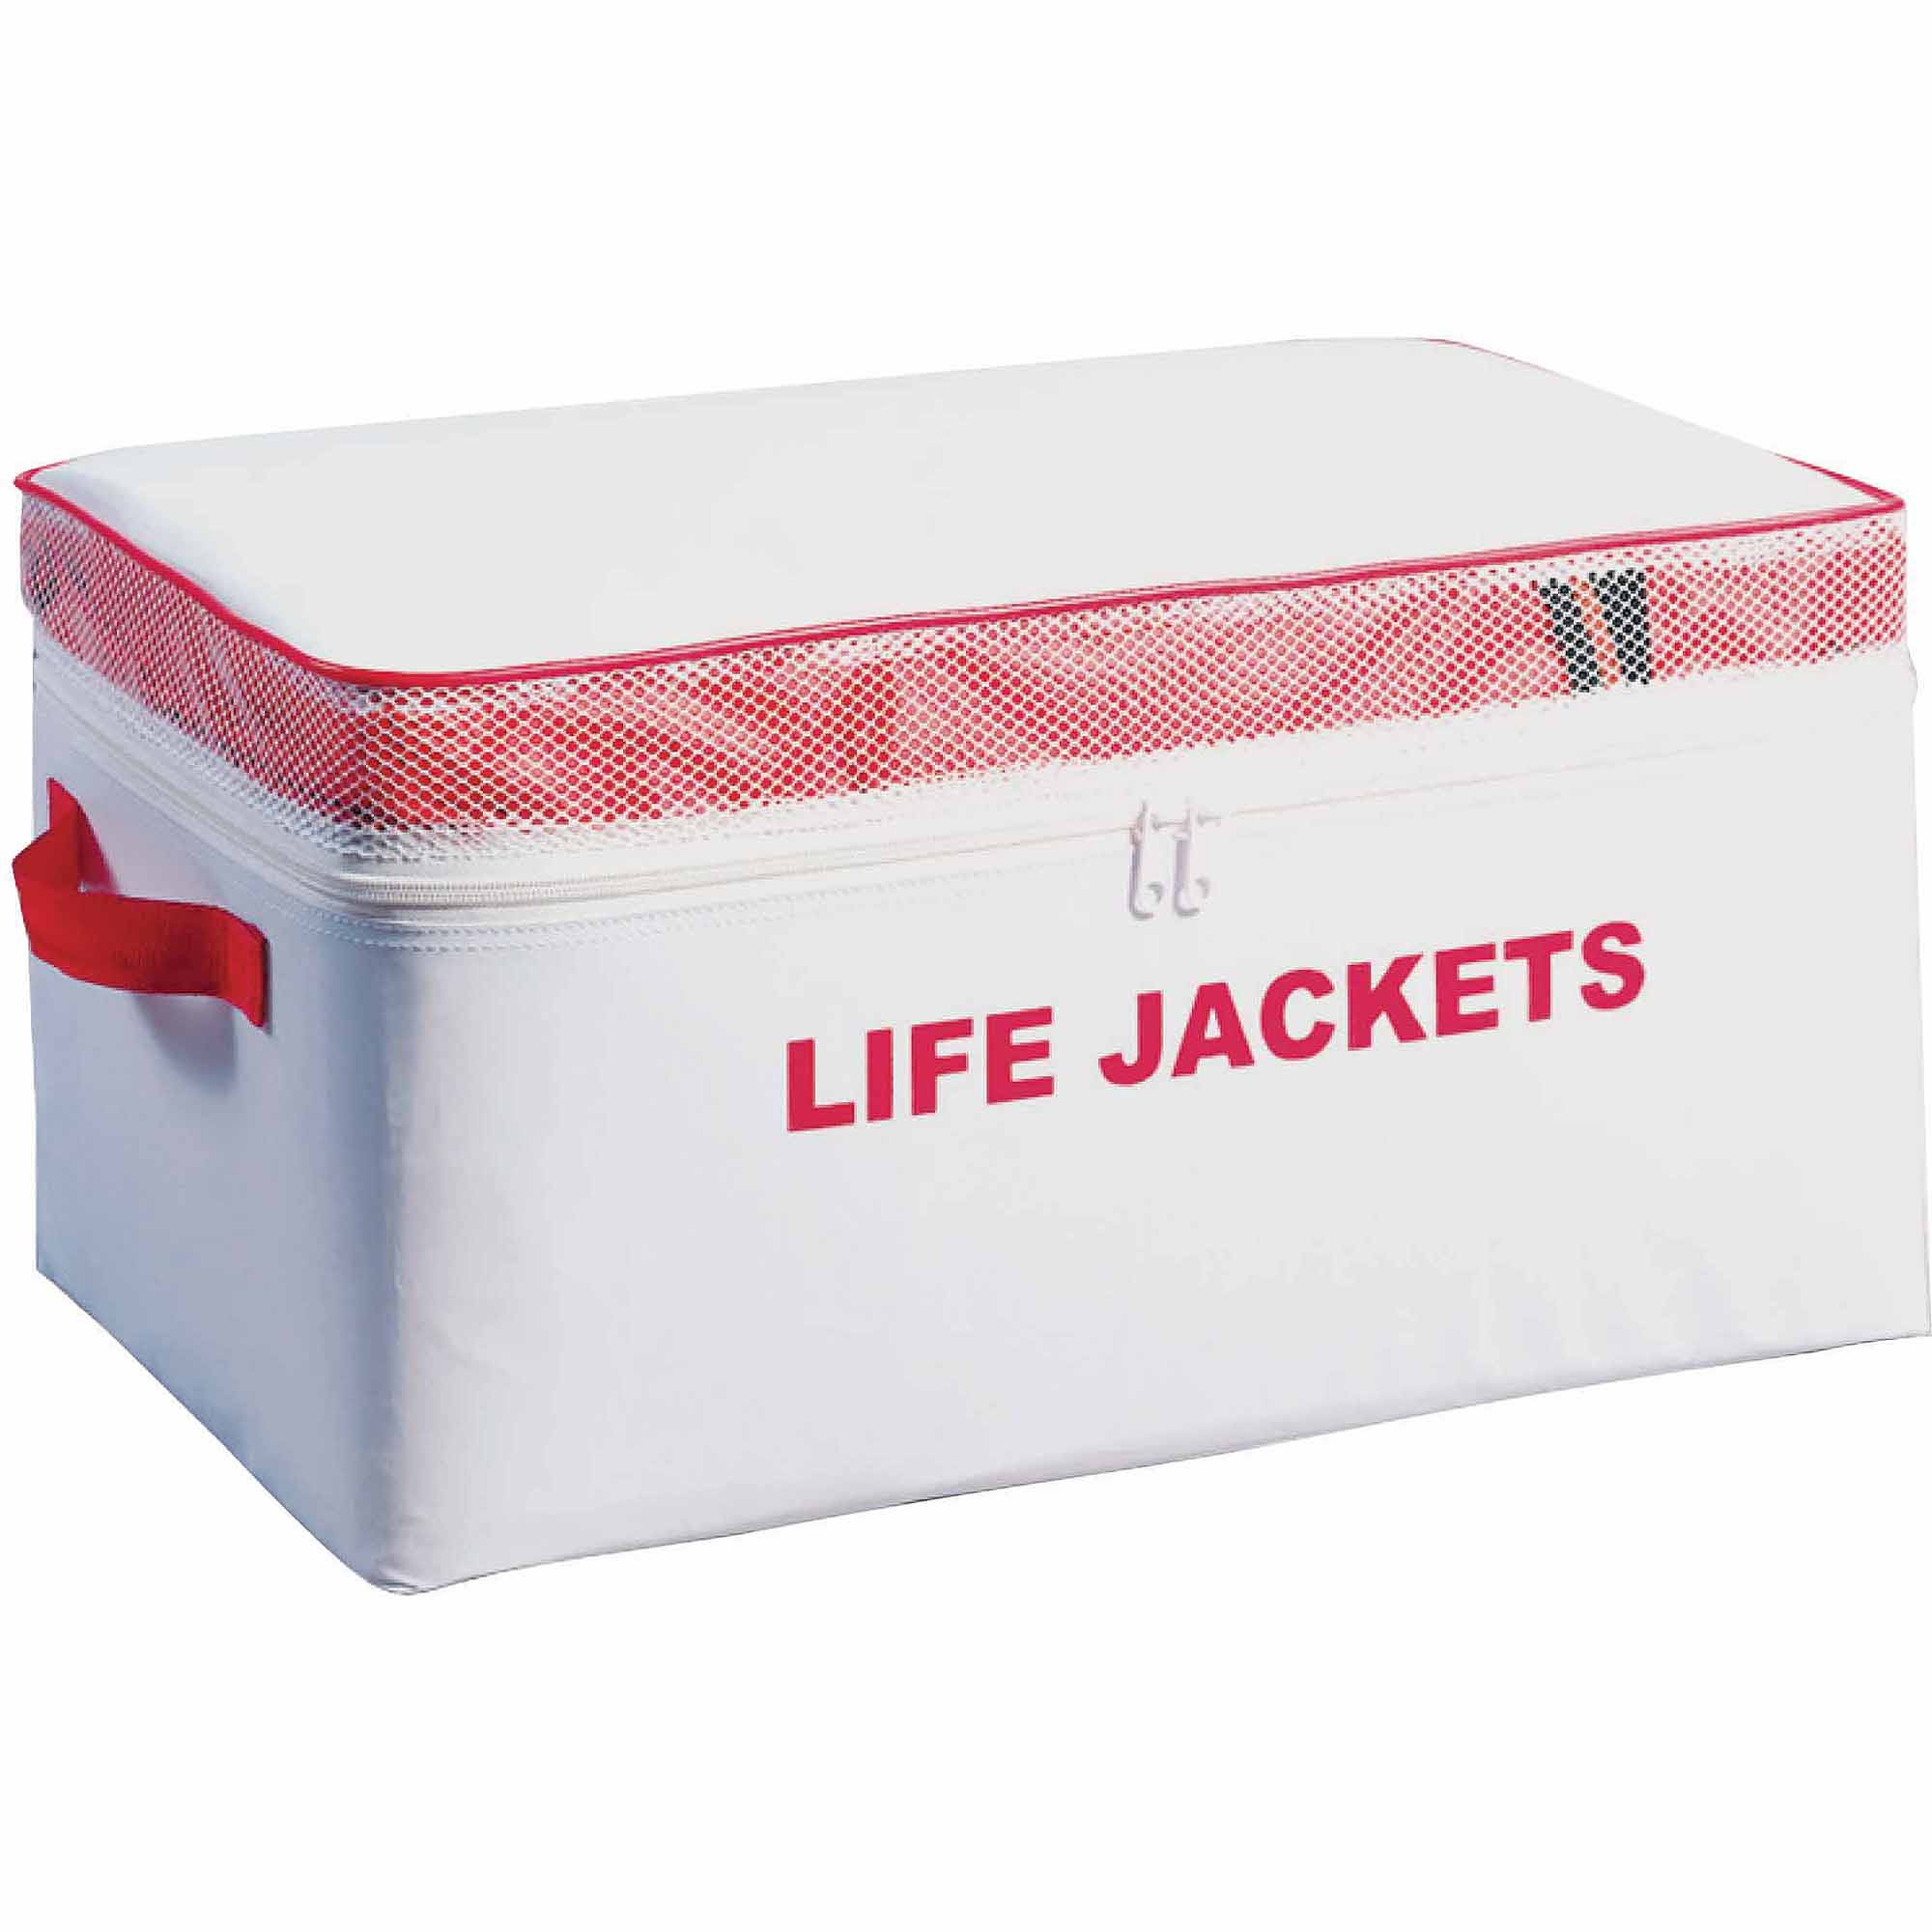 Exceptional Airhead Life Jacket Storage Bag Only, Holds 4 Type II PFDu0027s   Walmart.com